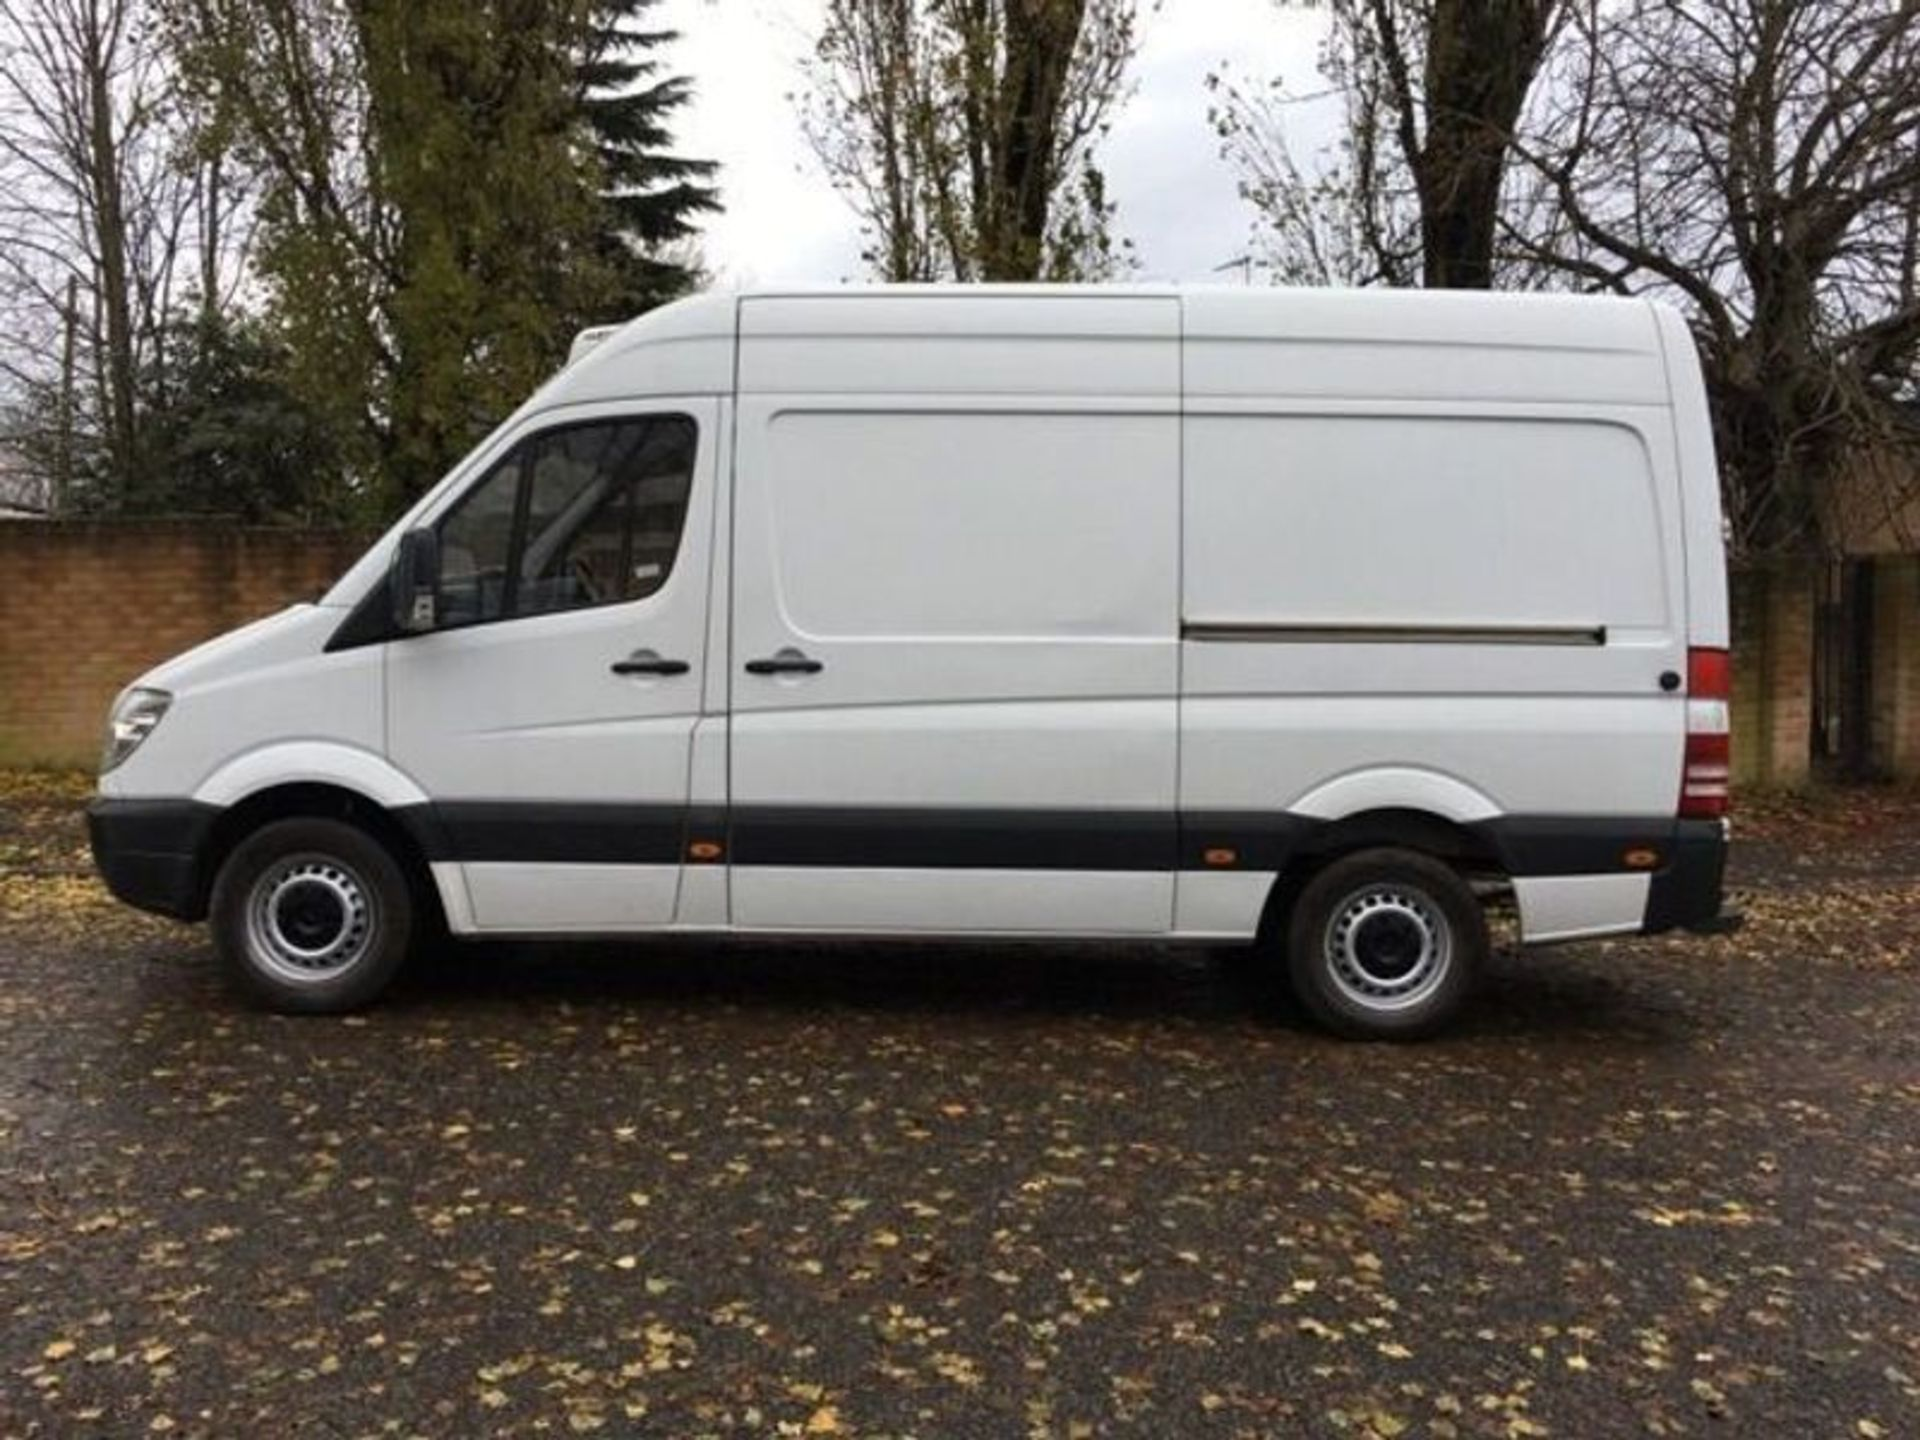 Lot 30 - Mercedes Sprinter 313 2.1 CDI Fridge/Freezer Overnight/Standby Van - 2012 Model